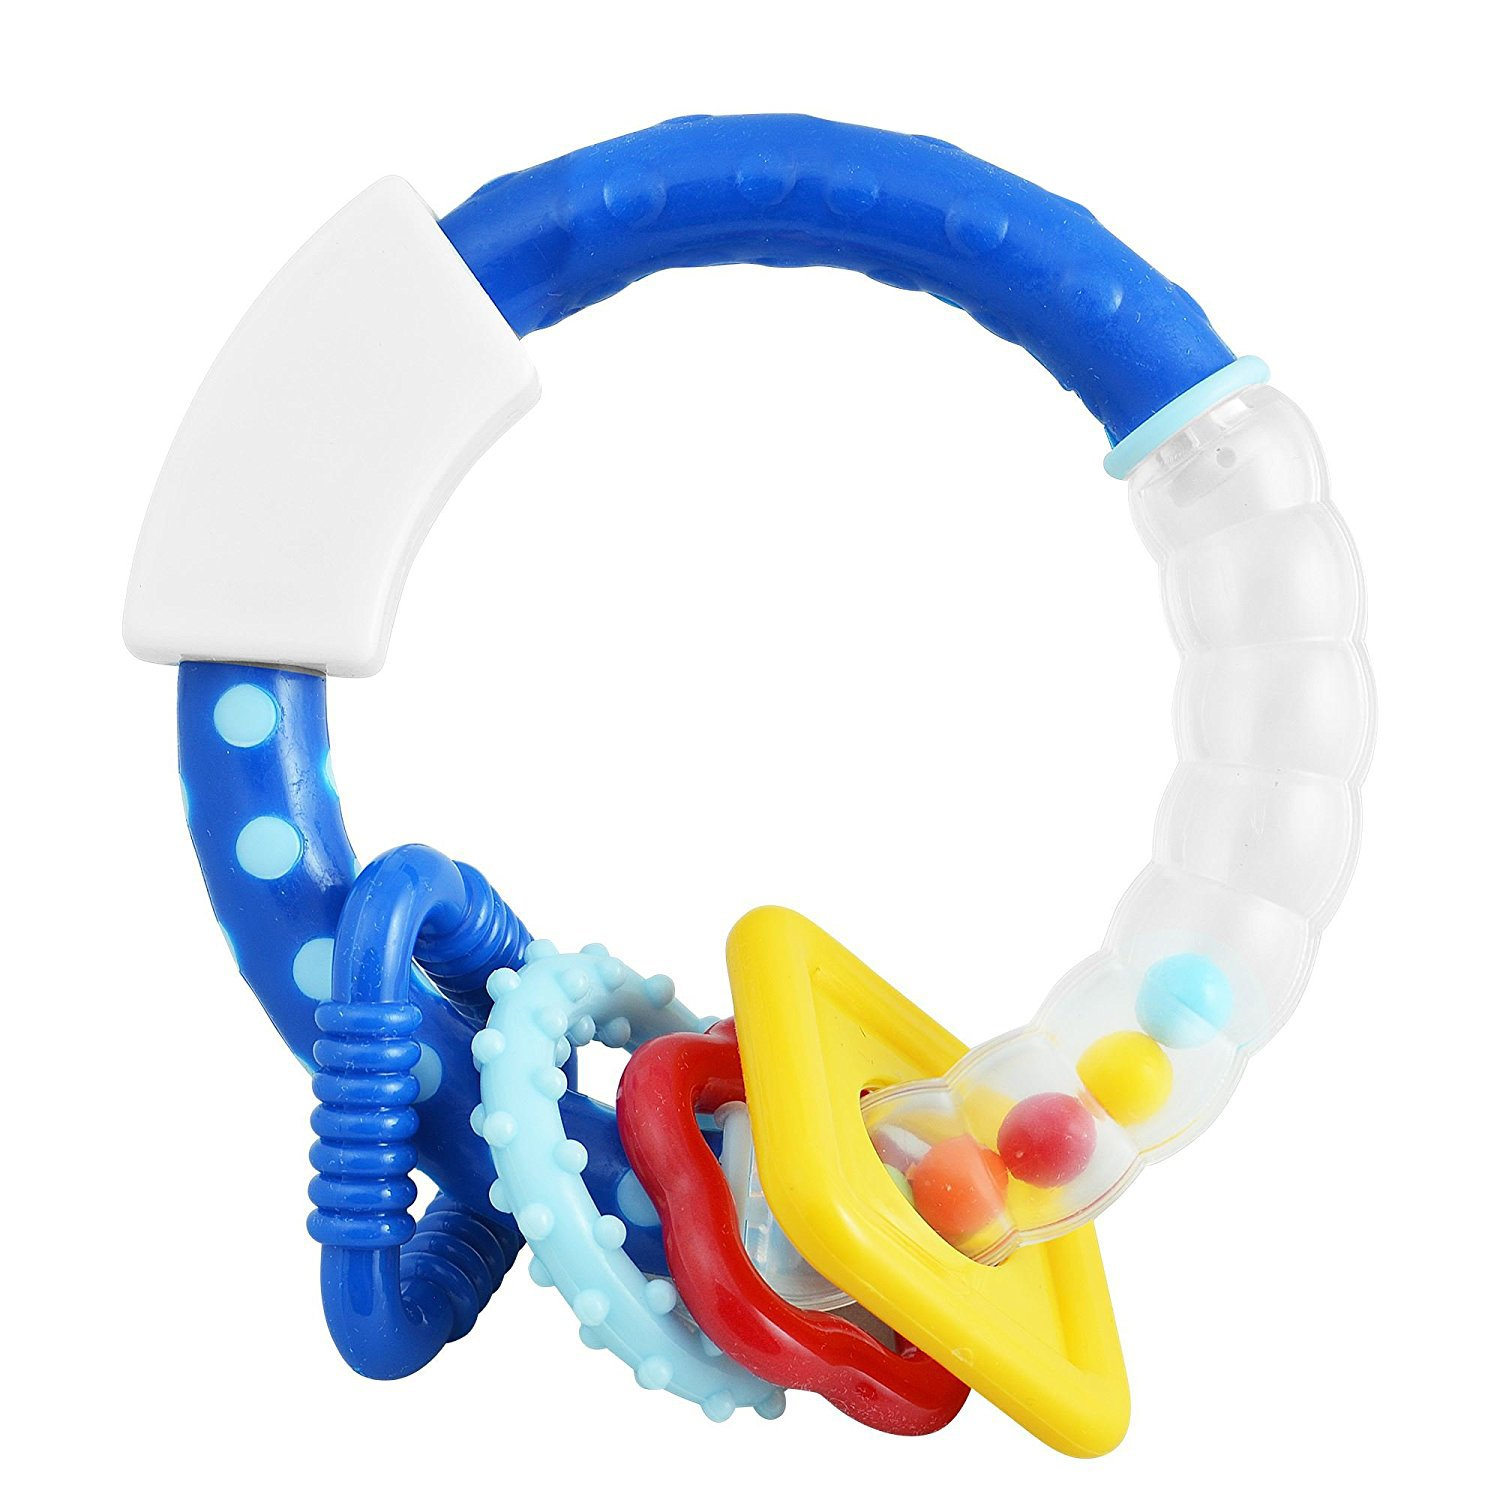 Baby Rattle Toy Colourful Musical Sounds Rattling Bfa Child Kid Infant